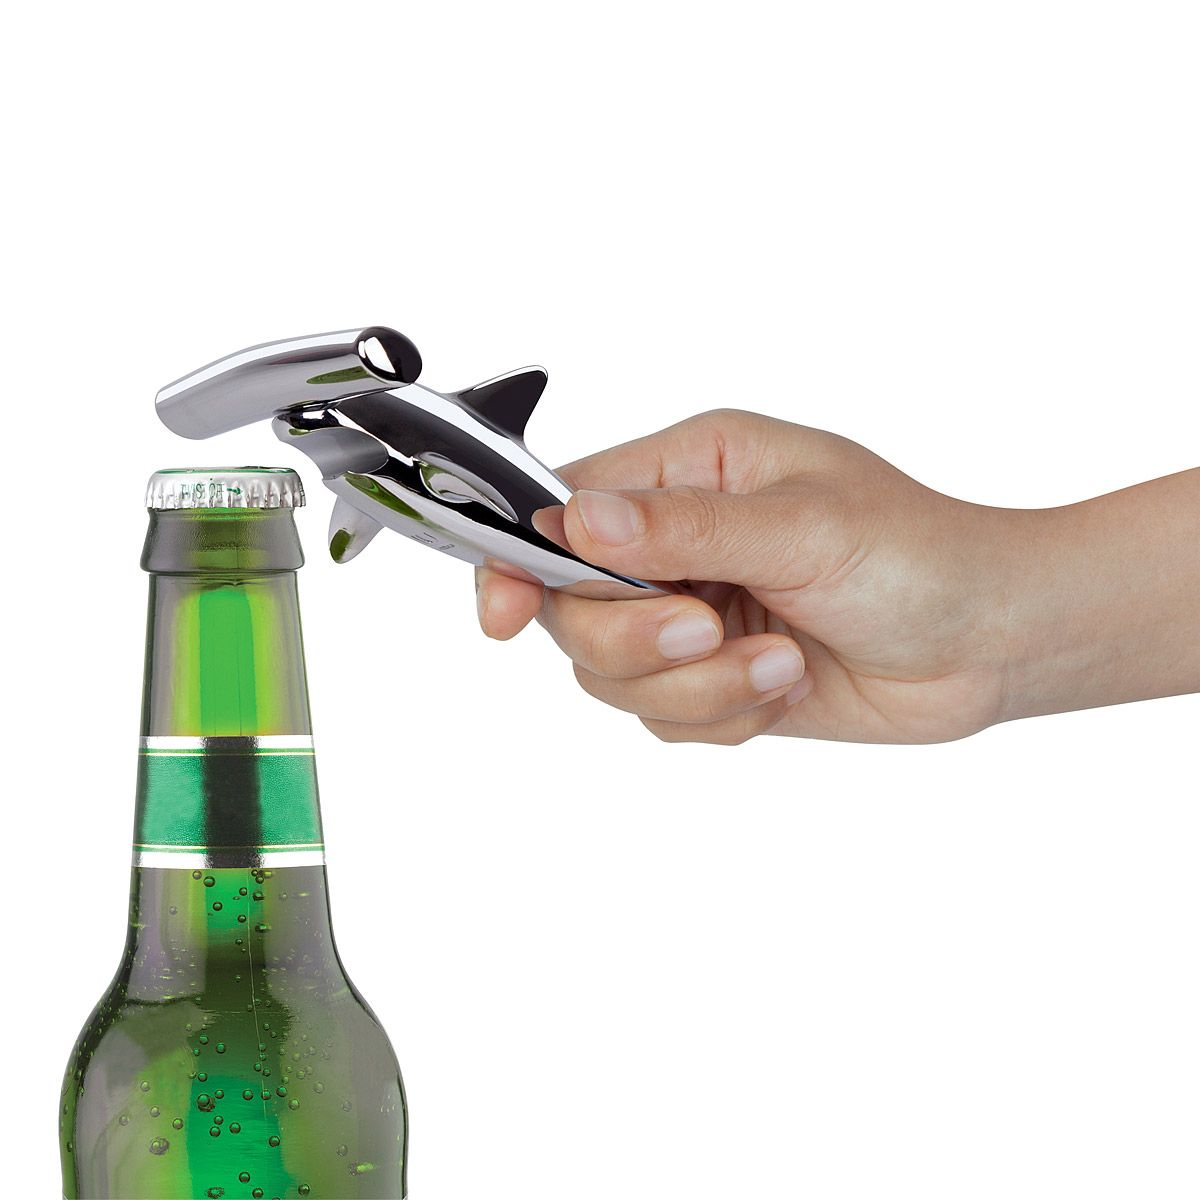 Cool Corkscrew Gifts Hammerhead Shark Corkscrew And Bottle Opener Stuff I